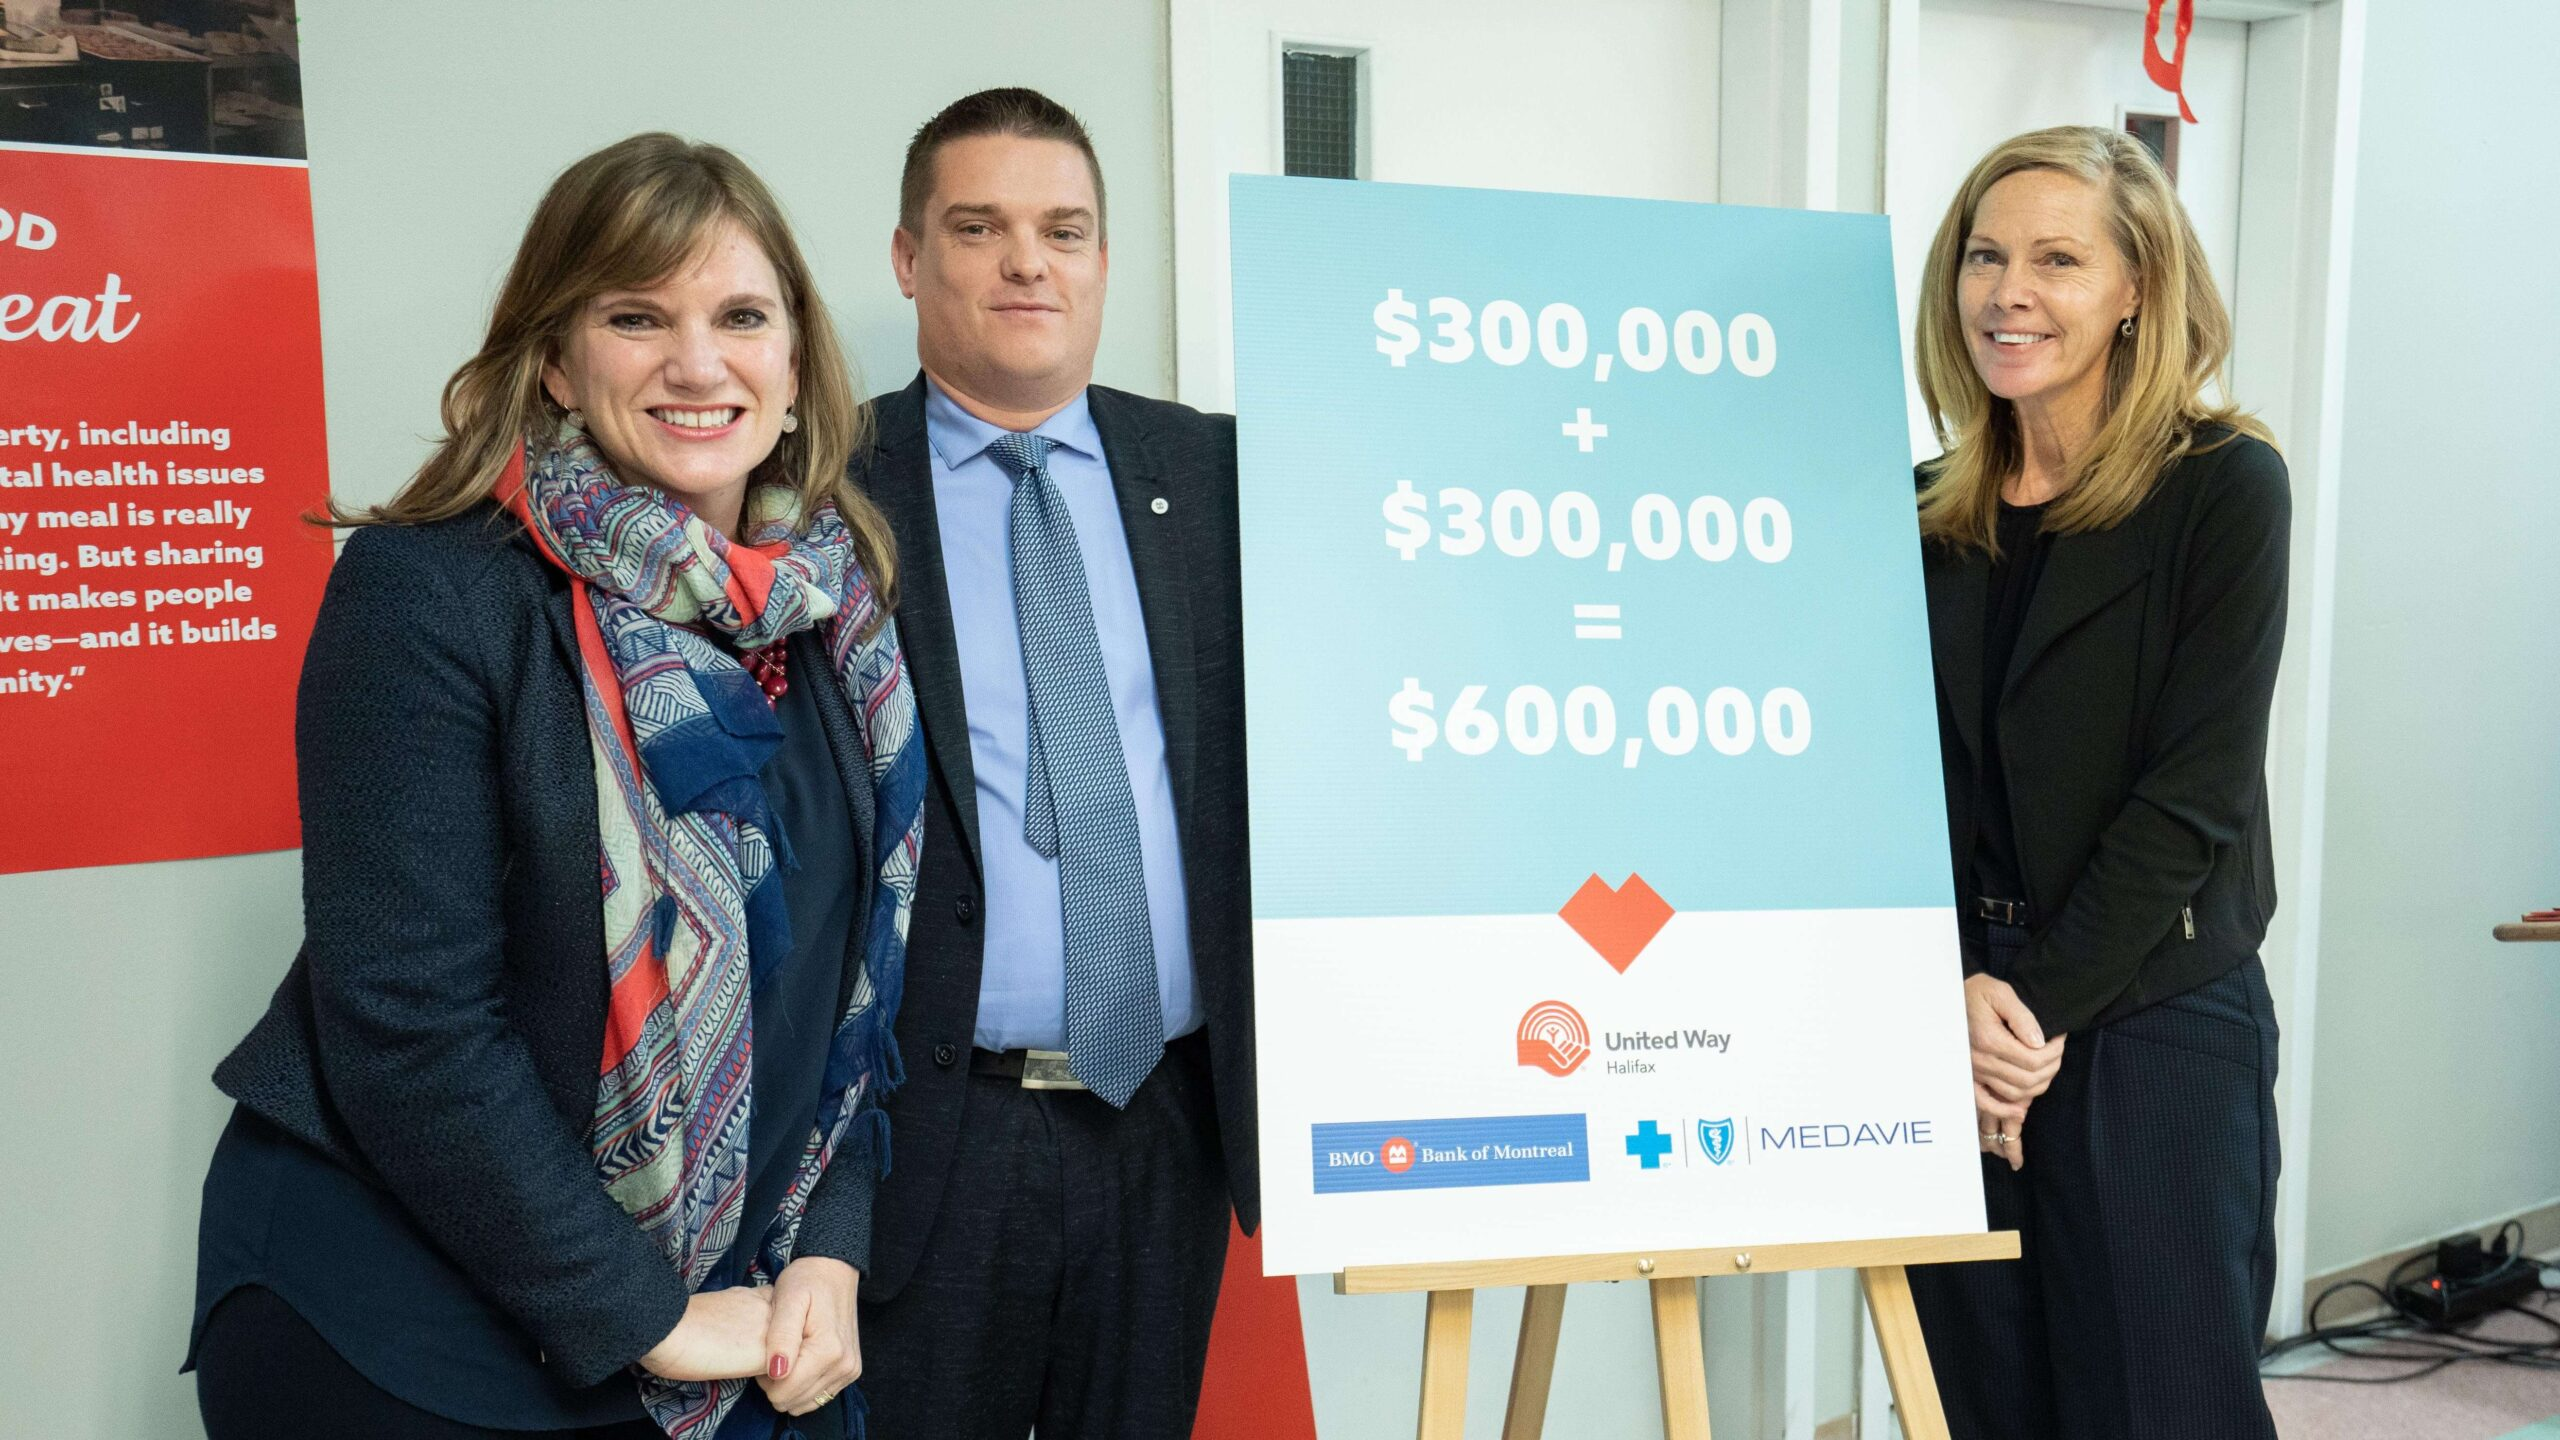 Three people stand around a sign that says $600,000